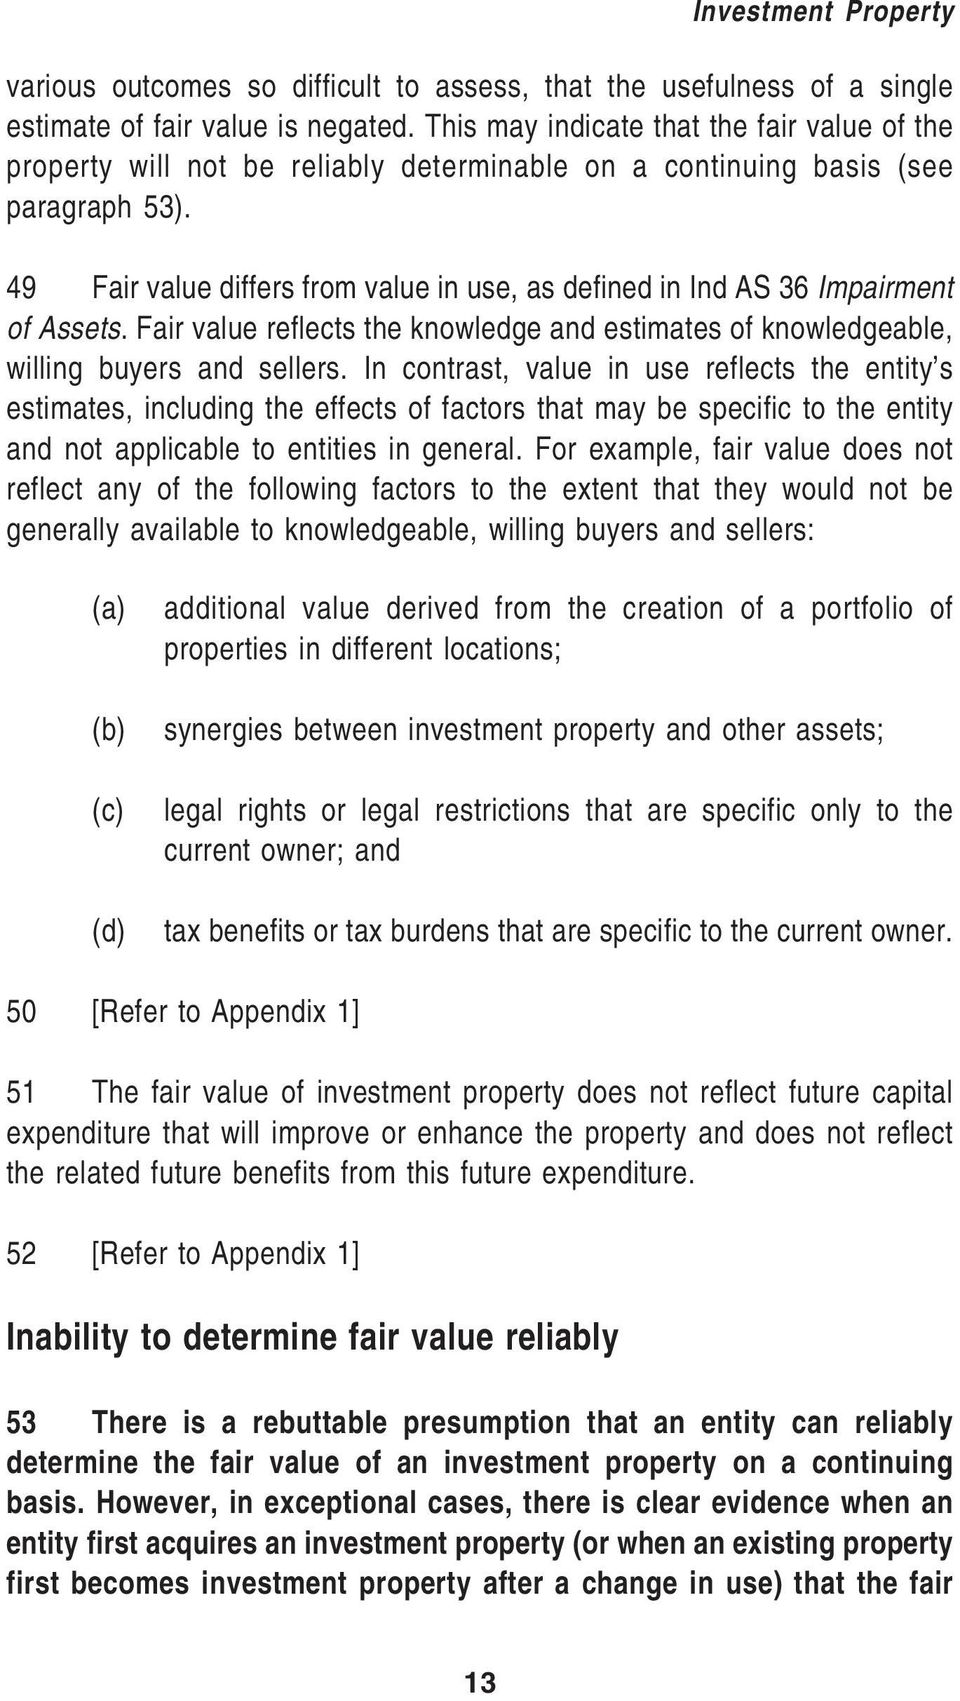 49 Fair value differs from value in use, as defined in Ind AS 36 Impairment of Assets. Fair value reflects the knowledge and estimates of knowledgeable, willing buyers and sellers.